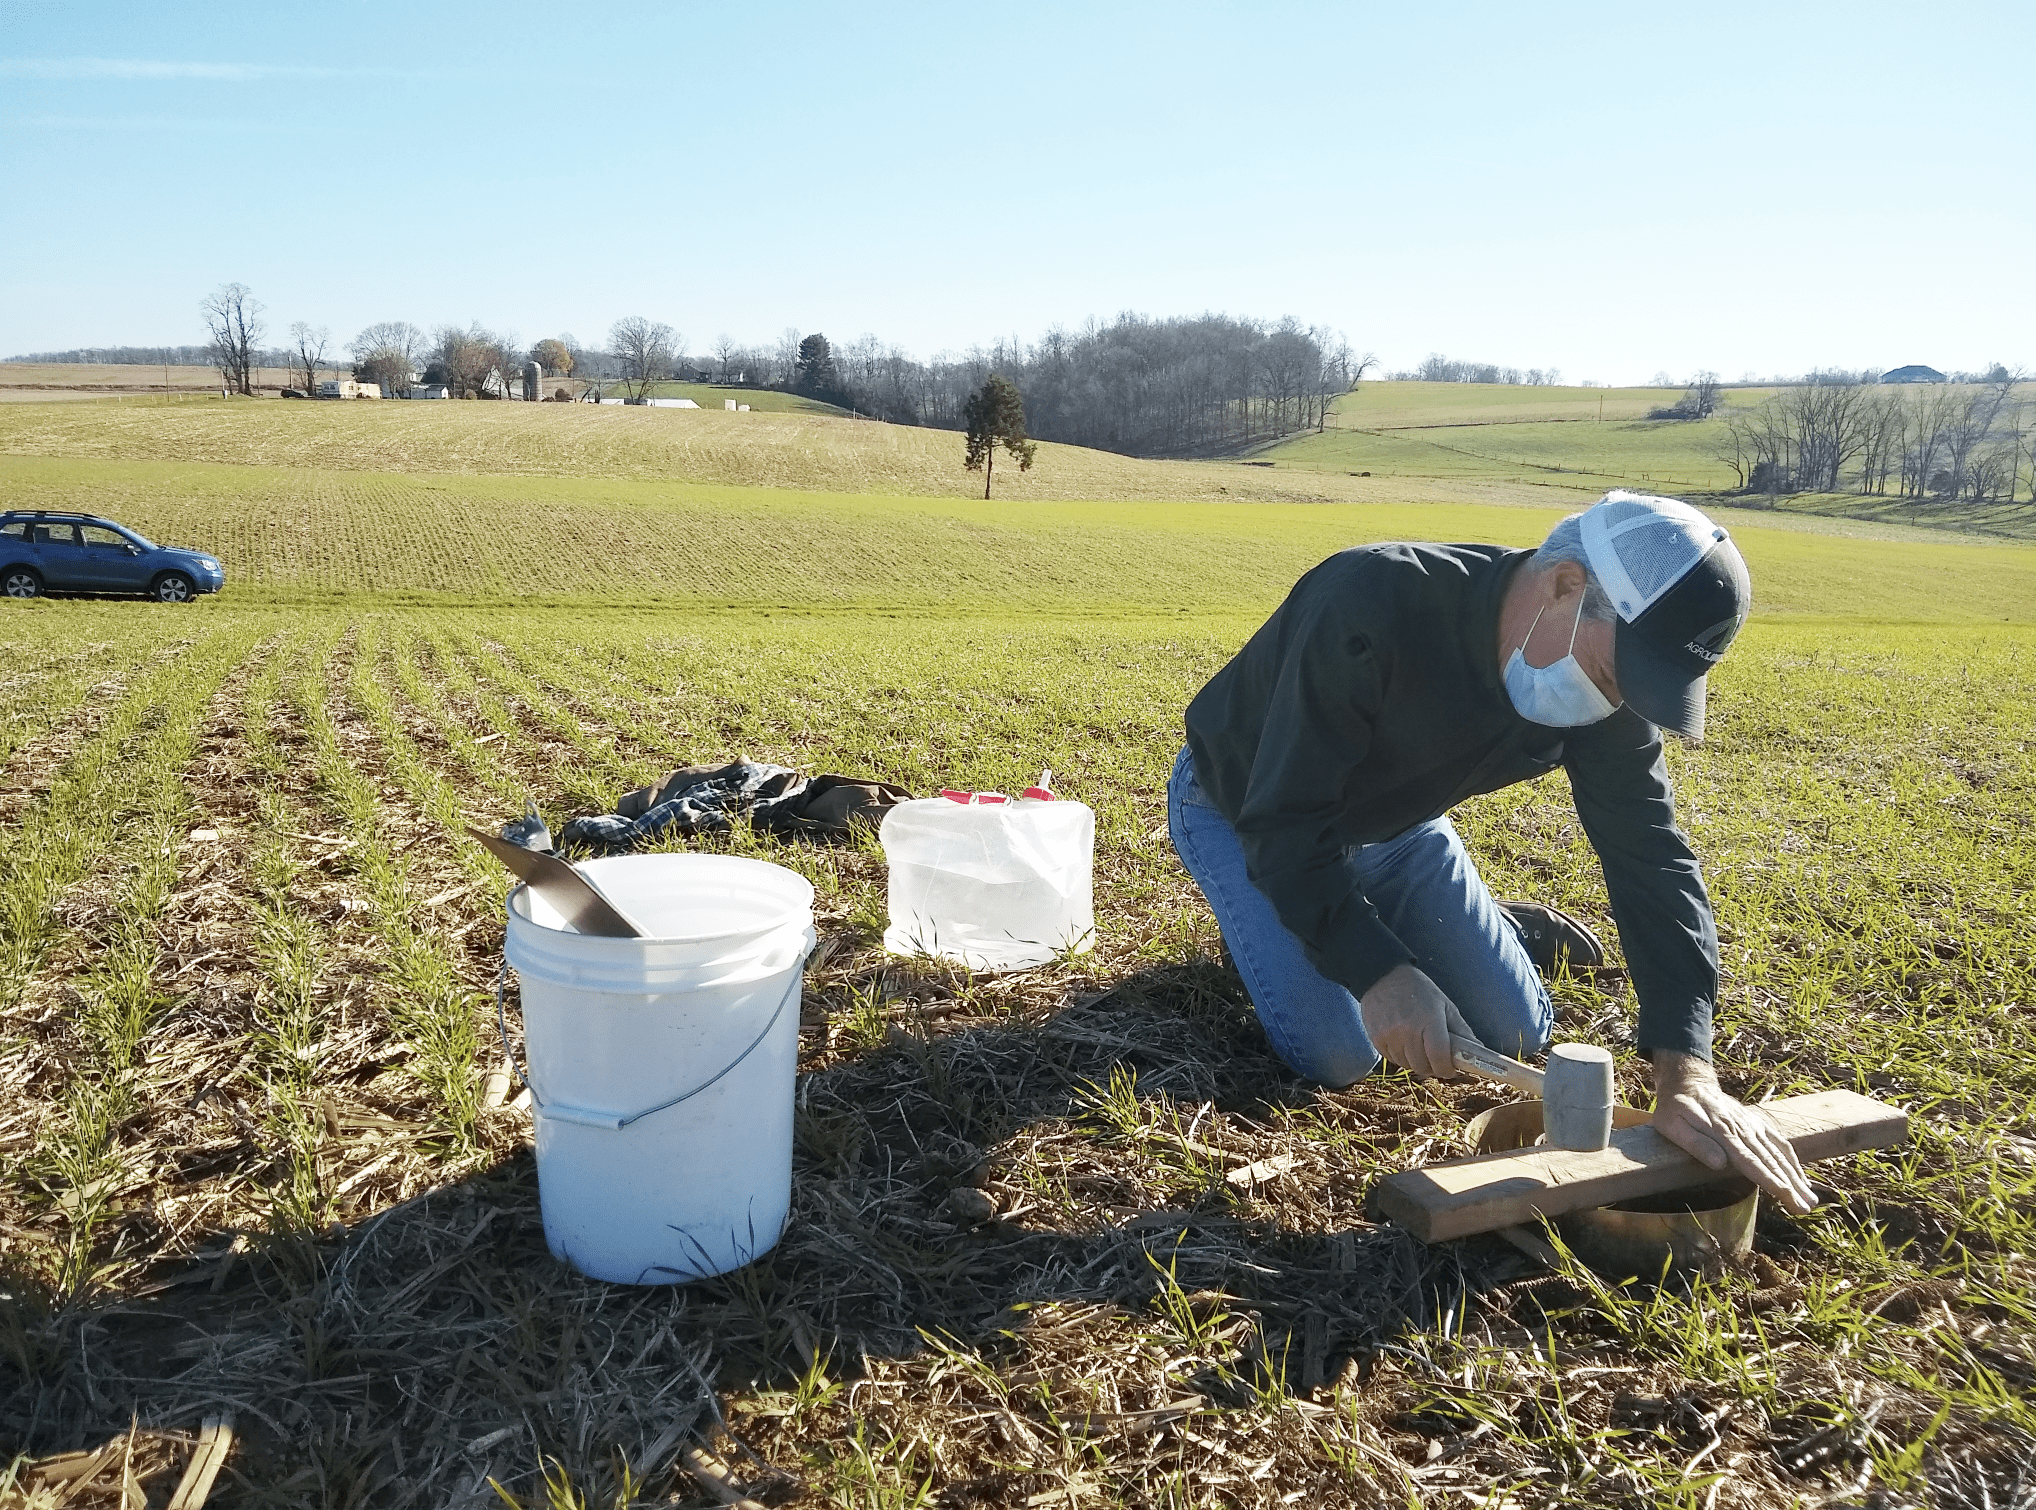 We expanded our study to more closely examine how field management affects water retention and runoff. Farmer and crop advisor Ben Hushon assists with our water infiltration trial on his father's 100-acre row crop farm in York County, Pa.